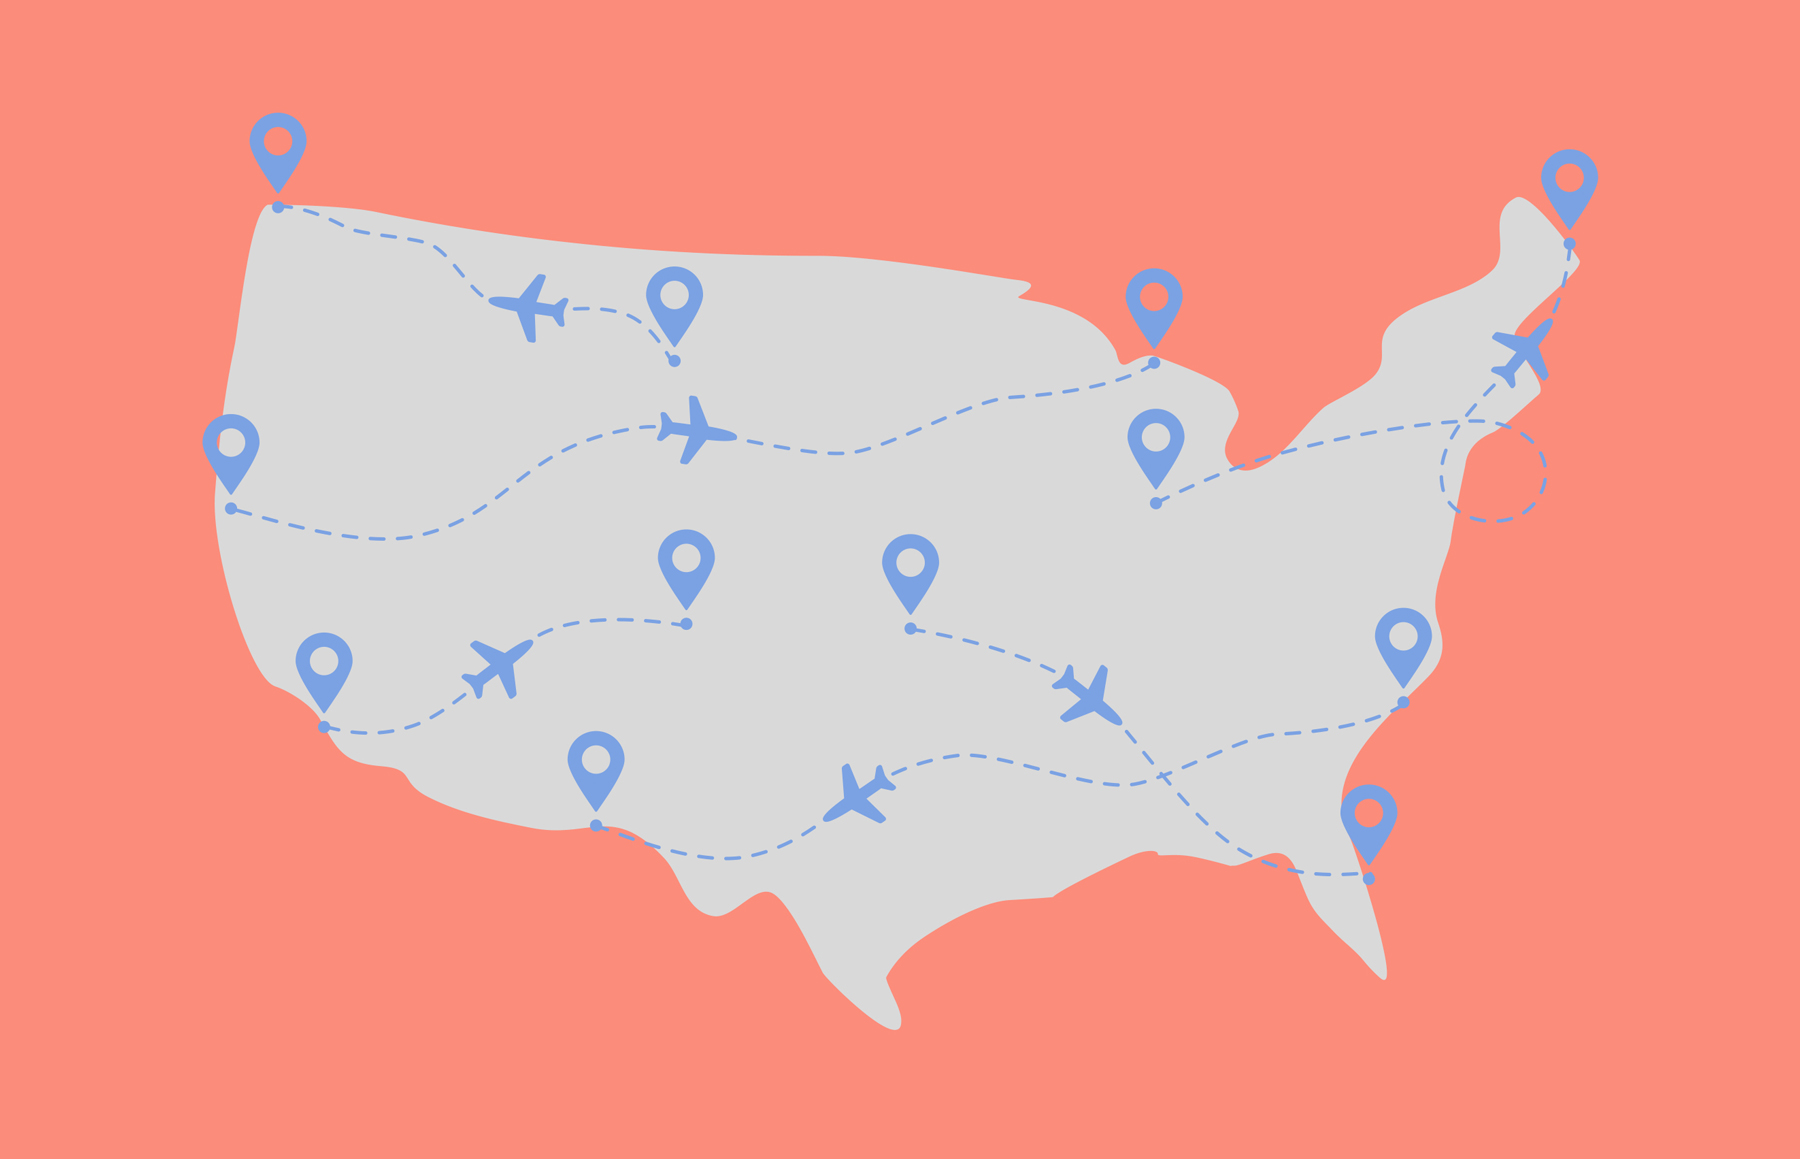 illustration of the map of the U.S. showing airline flight patterns